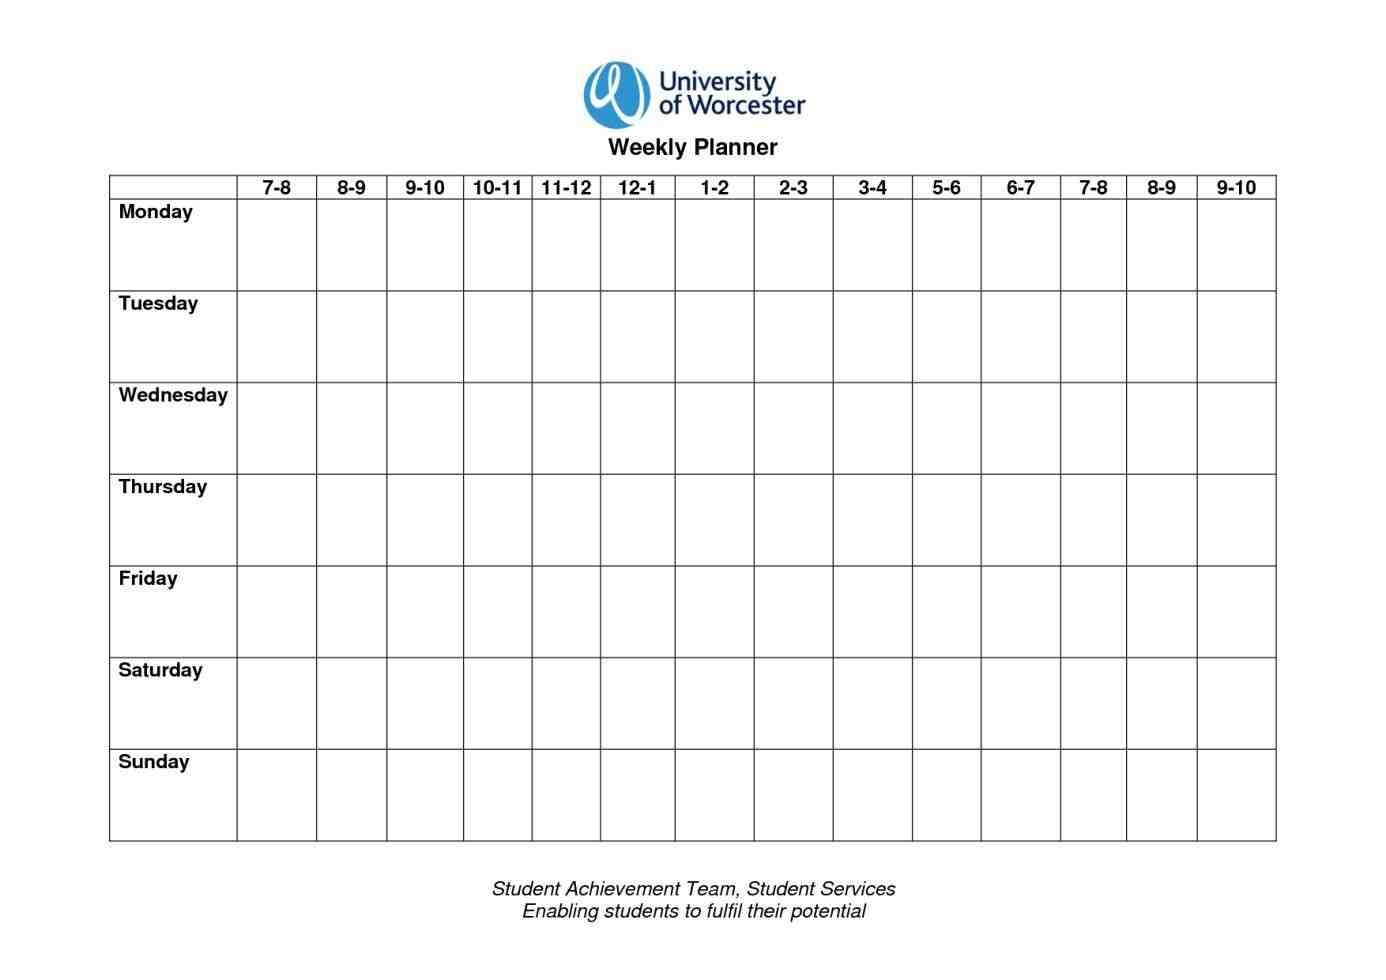 Monday Through Sunday Calendar | Calendar Template 2020 How To Make A Calendar In Word Monday Through Sunday